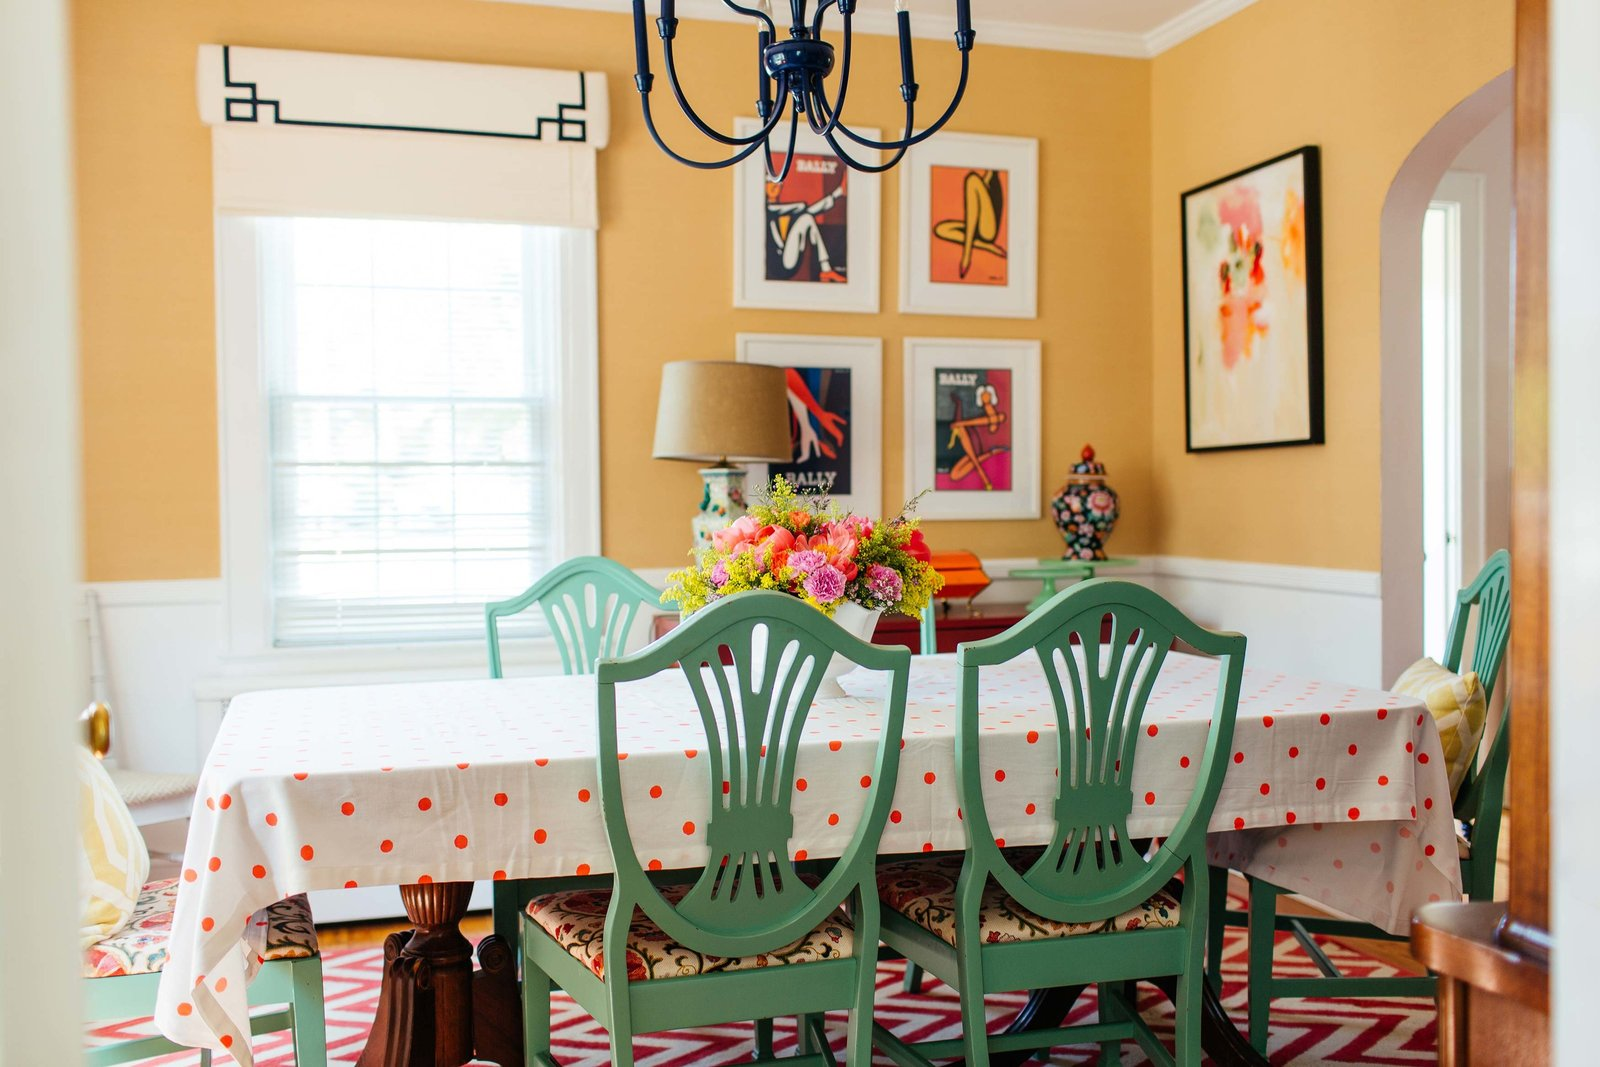 A yellow dining room with green chairs and chevron rug.